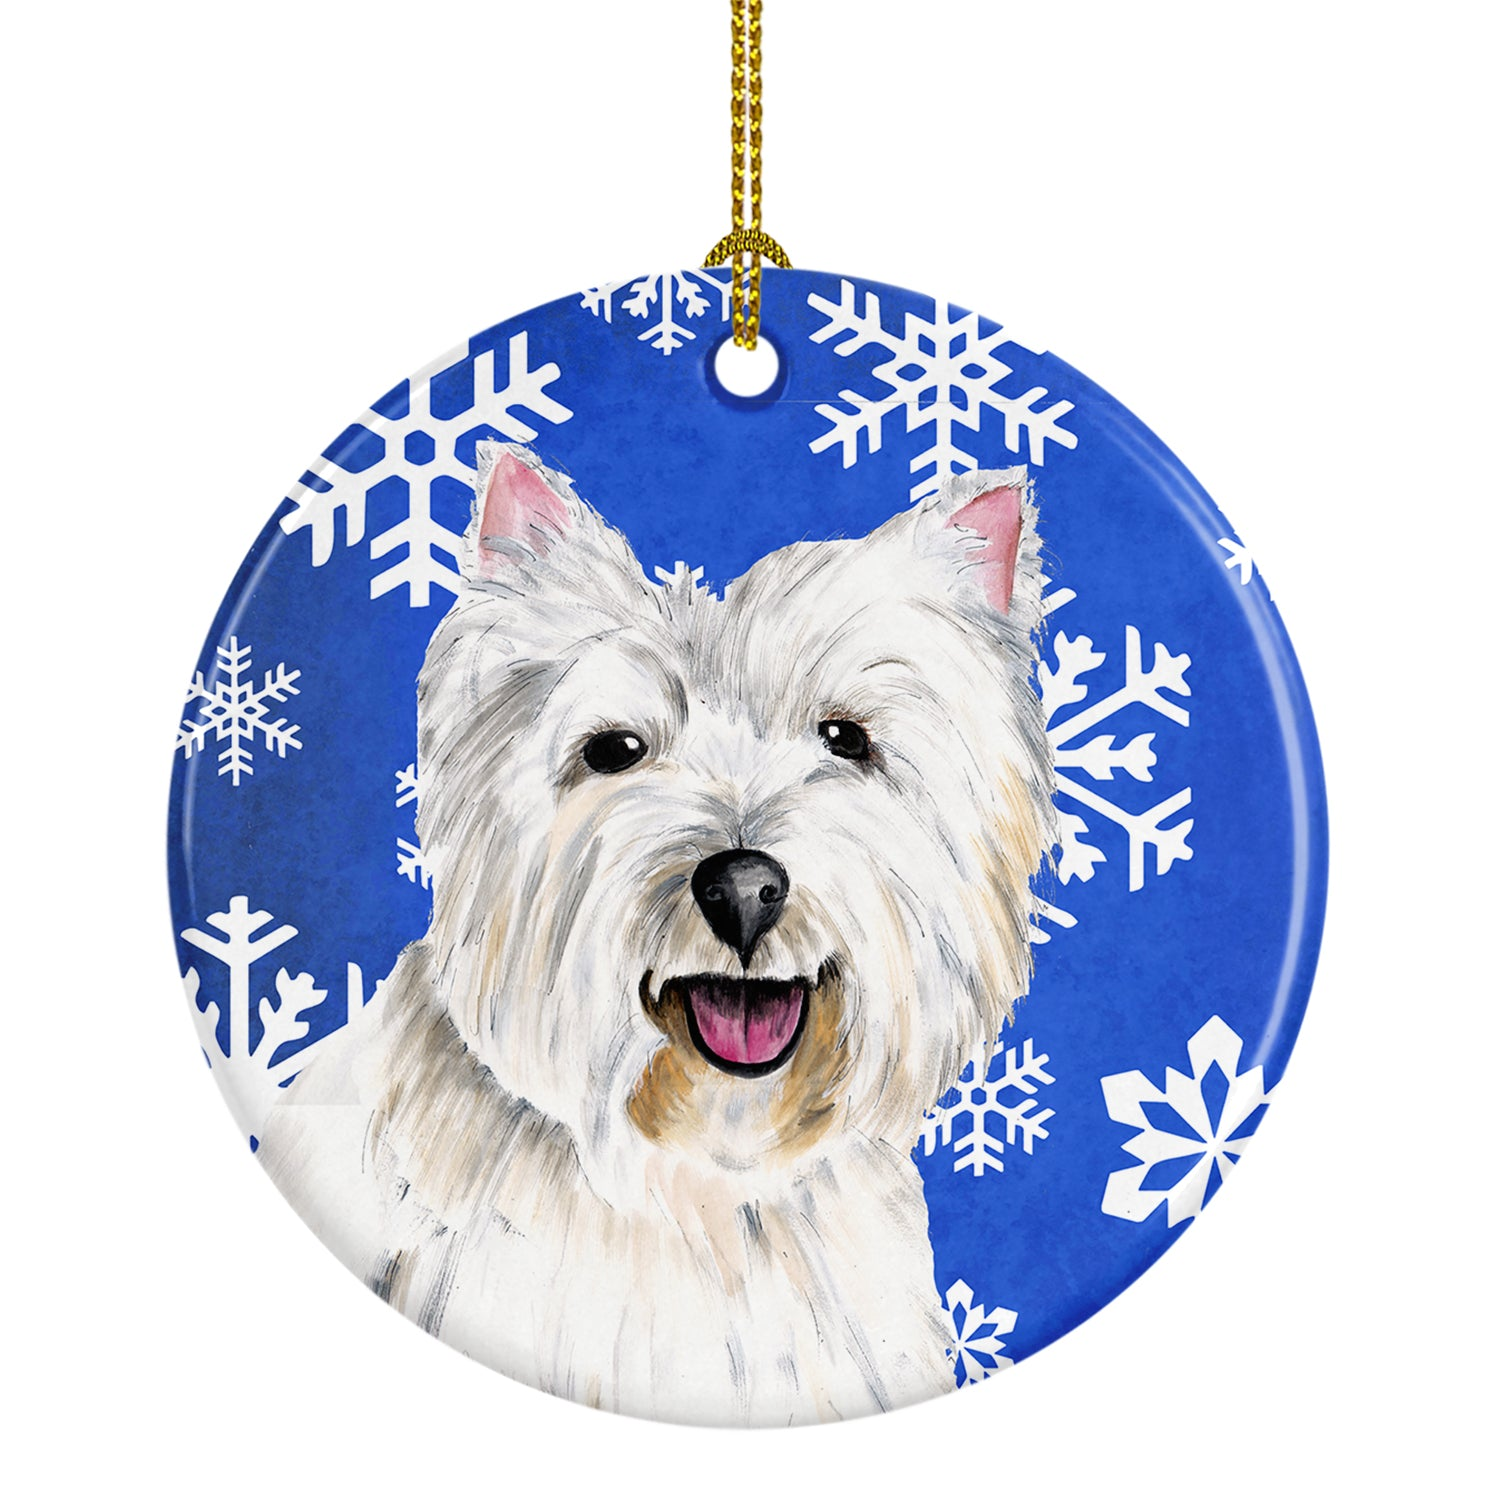 Westie Winter Snowflakes Holiday Ceramic Ornament SC9370 by Caroline's Treasures